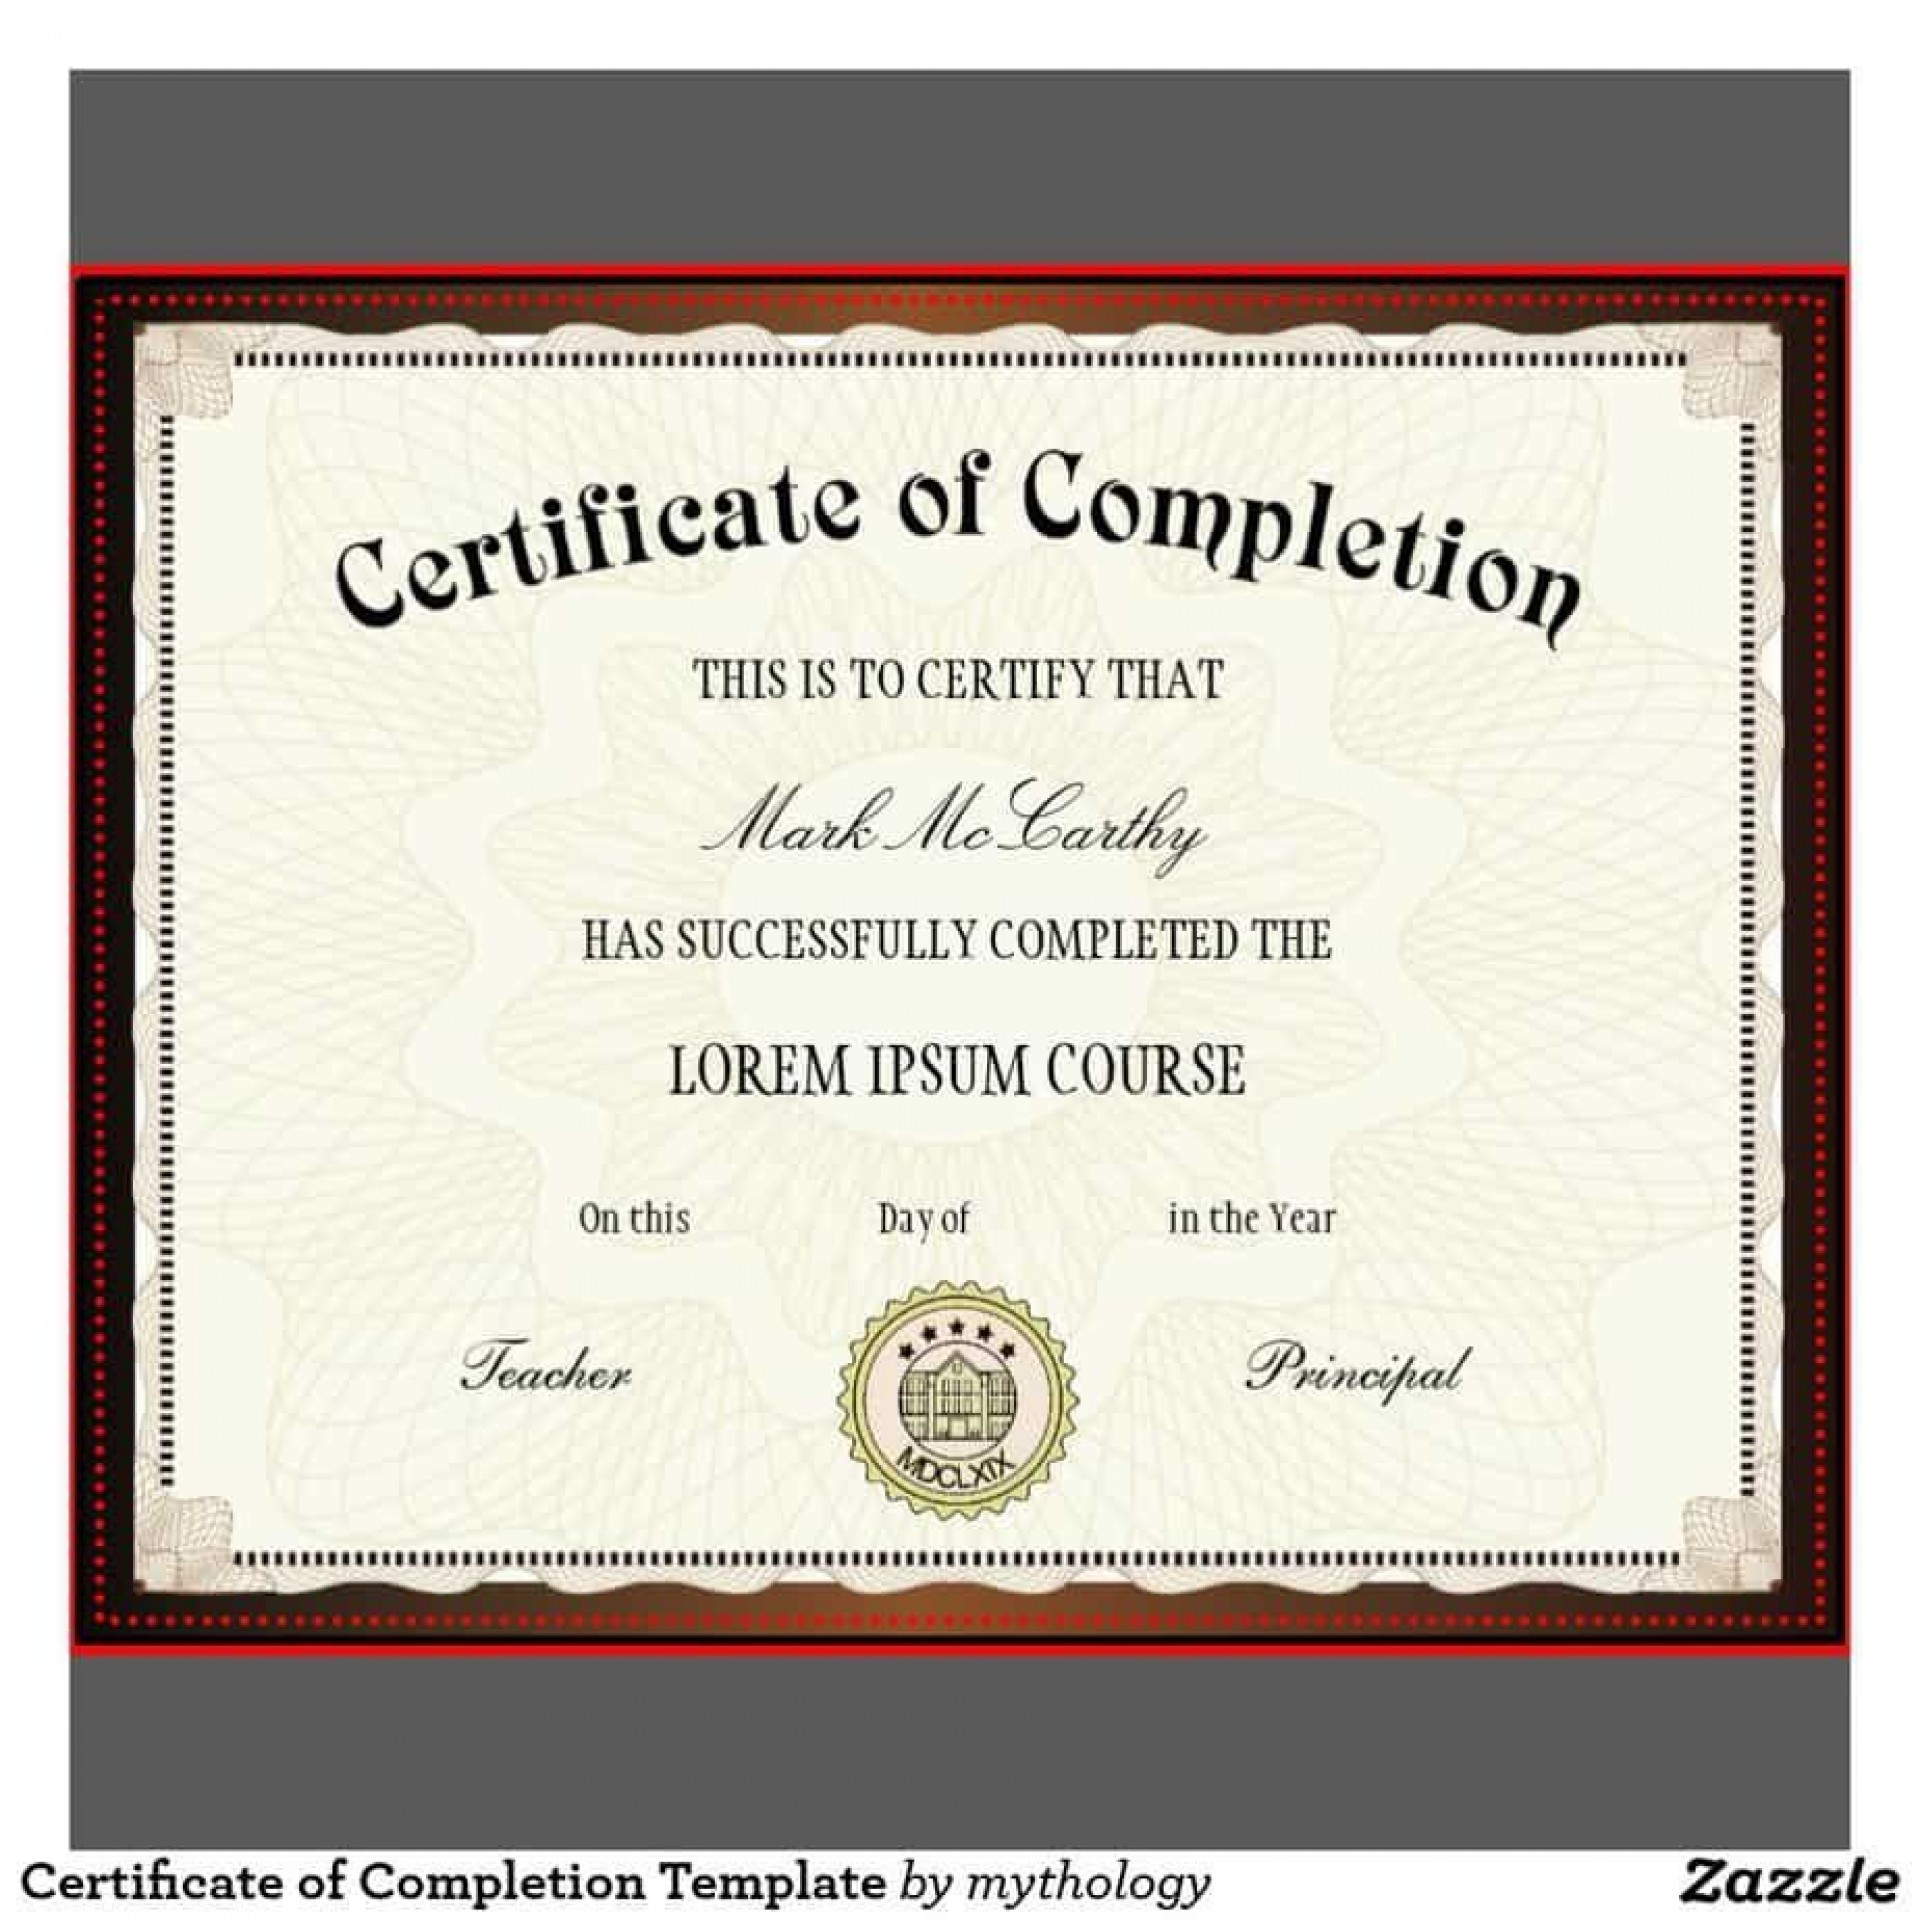 009 Frightening Free Certificate Of Completion Template Highest Quality  Blank Printable Download Word Pdf1920